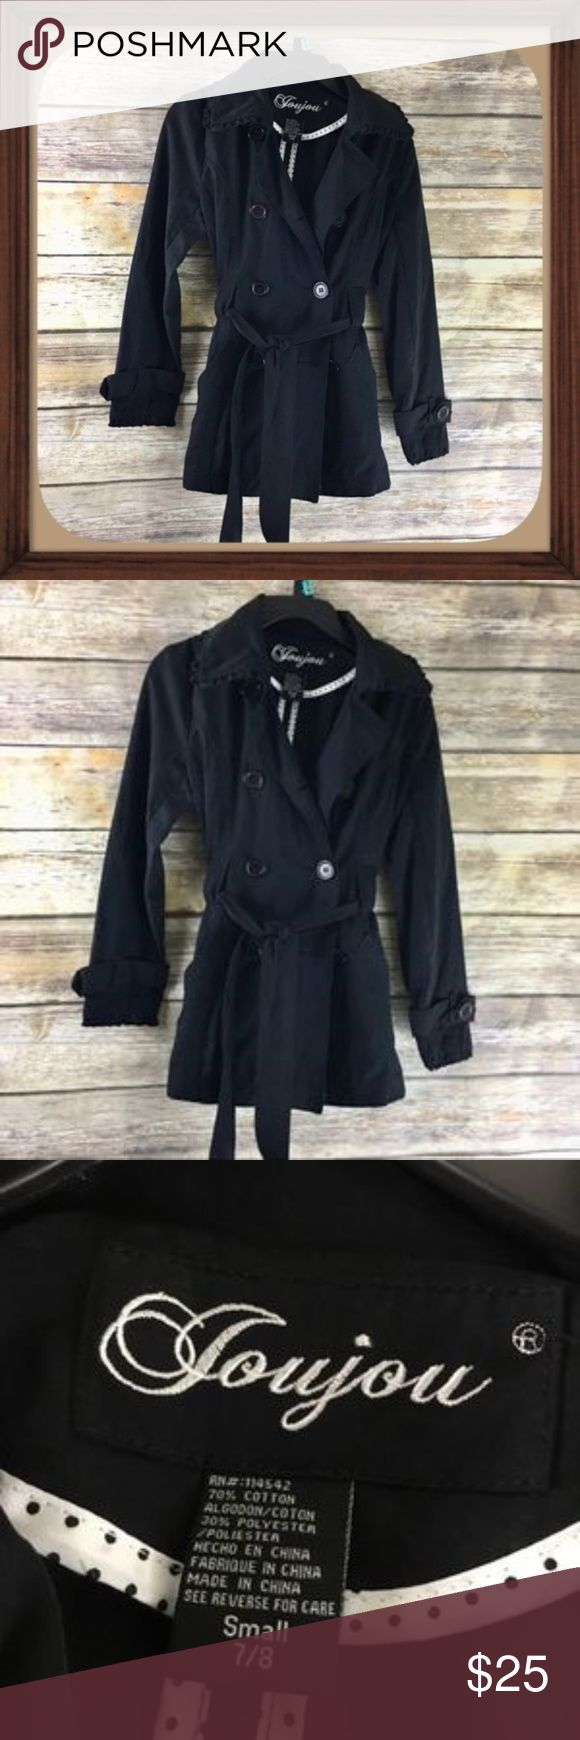 Jou Jou Girls Black Trench Coat Size Small 7/8 Girls black trench coat. Size small 7/8. In excellent used condition. Pockets on sides. 24 inches long. 19 inch sleeves. 15 inches arm pit to arm pit Jou Jou Jackets & Coats